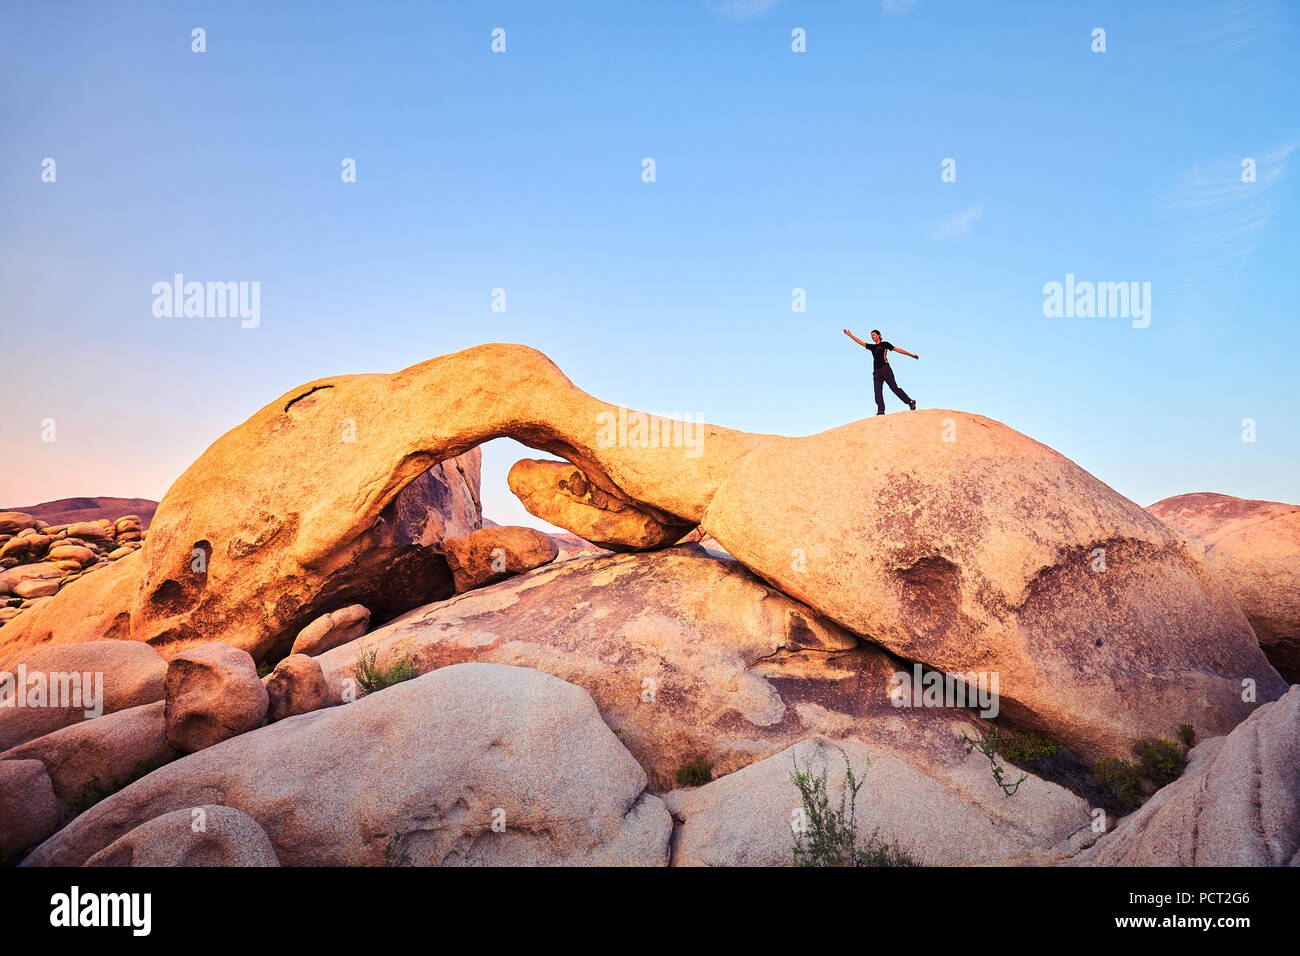 Unique Rock Formations At Joshua Tree National Park With